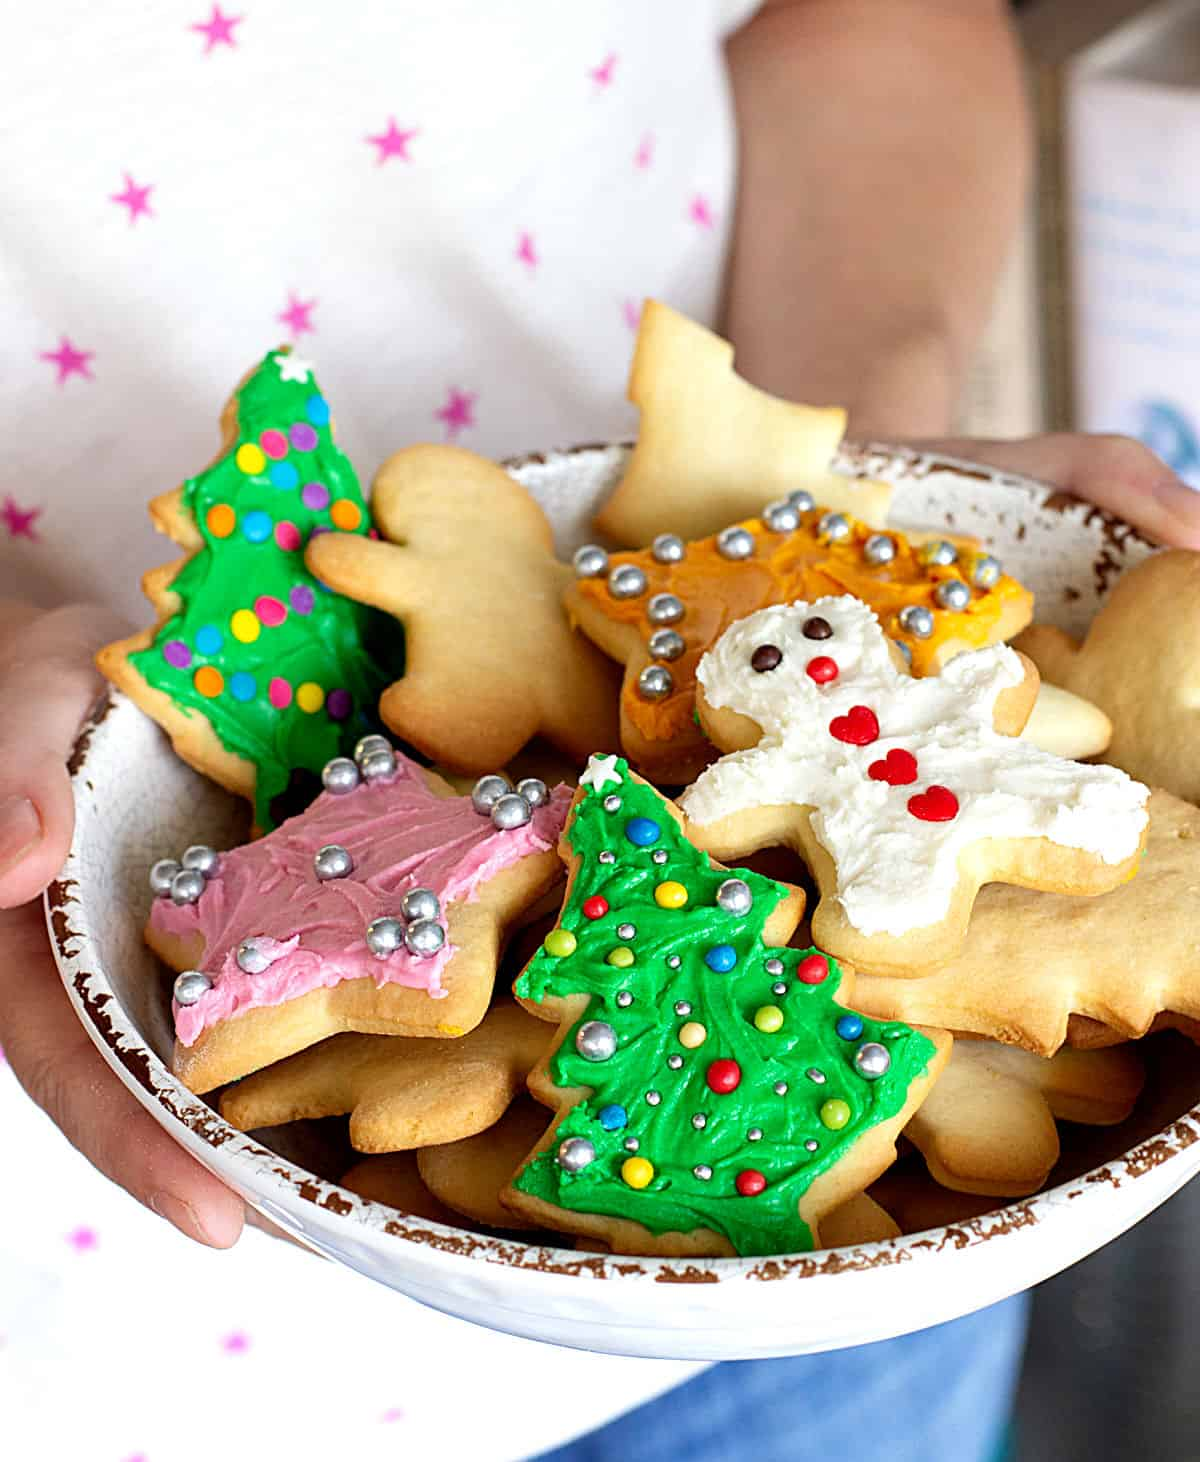 Person holding white shallow bowl with different frosted colorful Christmas cut out cookies